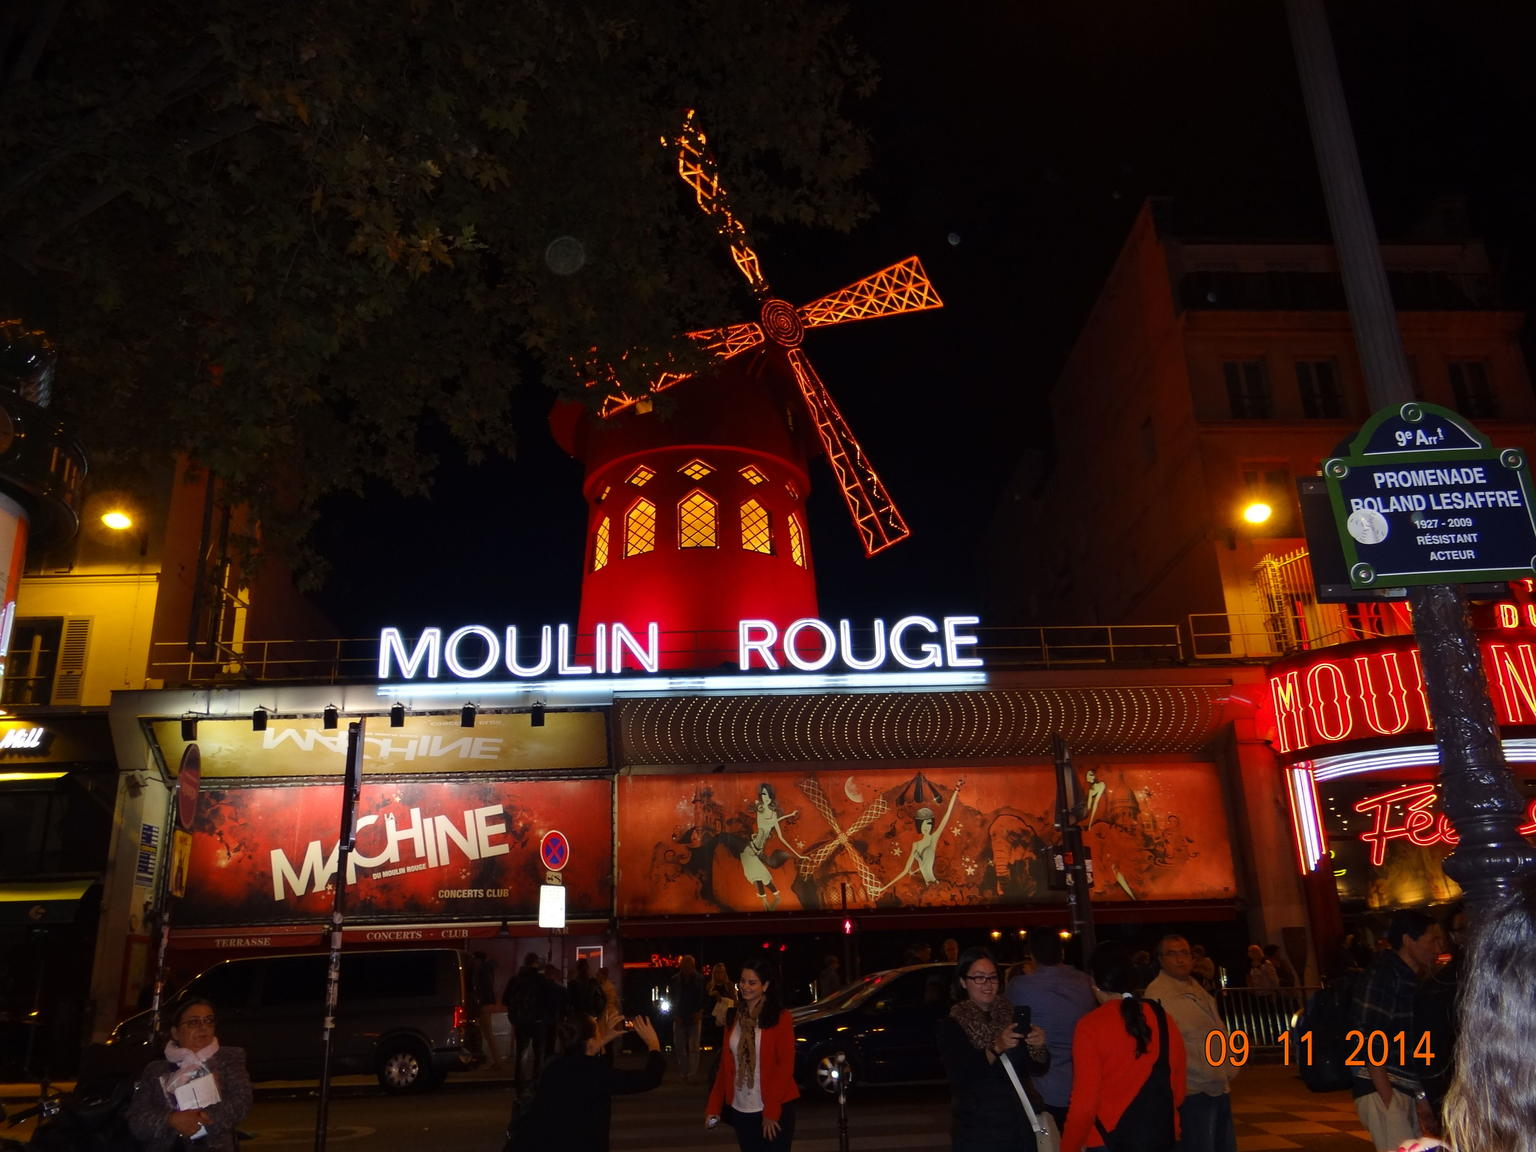 MORE PHOTOS, Paris by Night Illuminations Tour and Paris Moulin Rouge Show